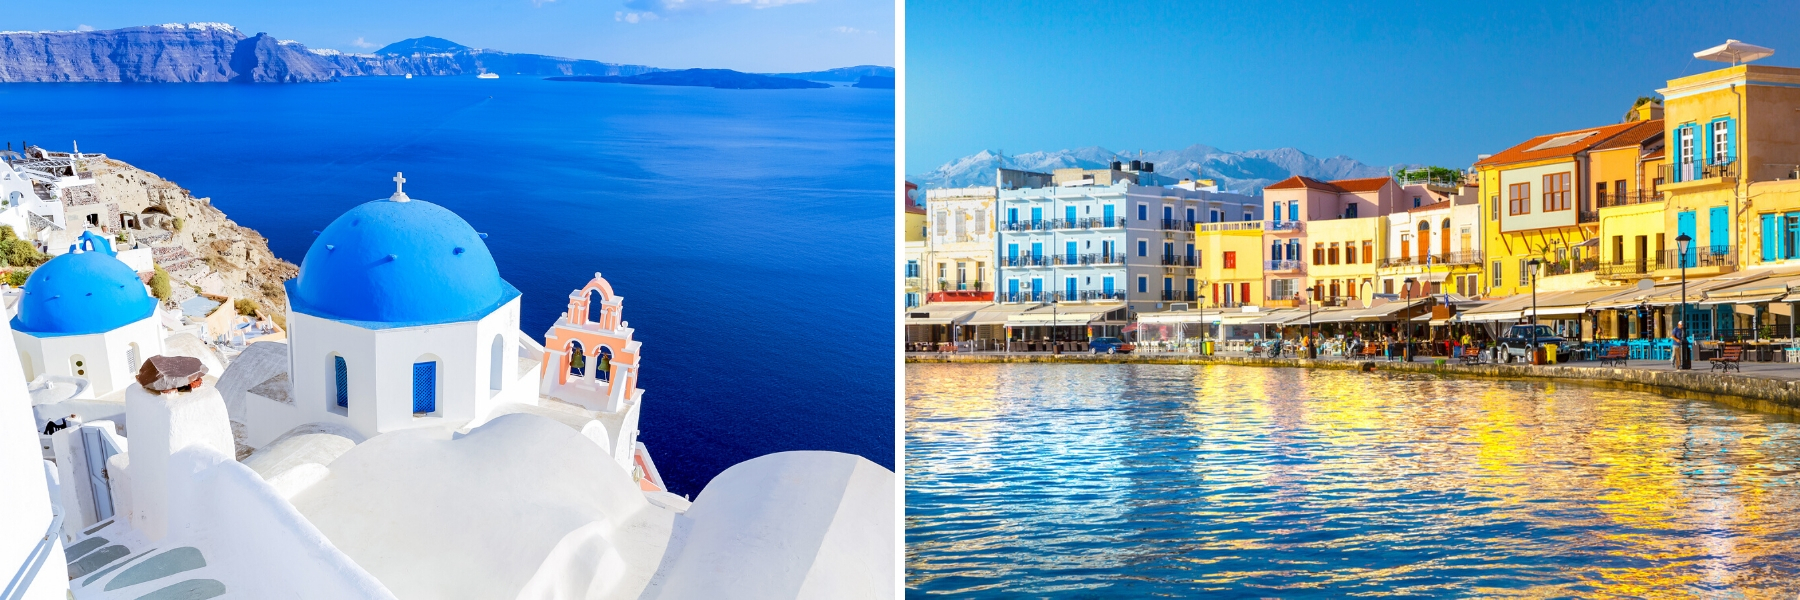 Unforgettable Cruises, Greece, Santorini, Crete